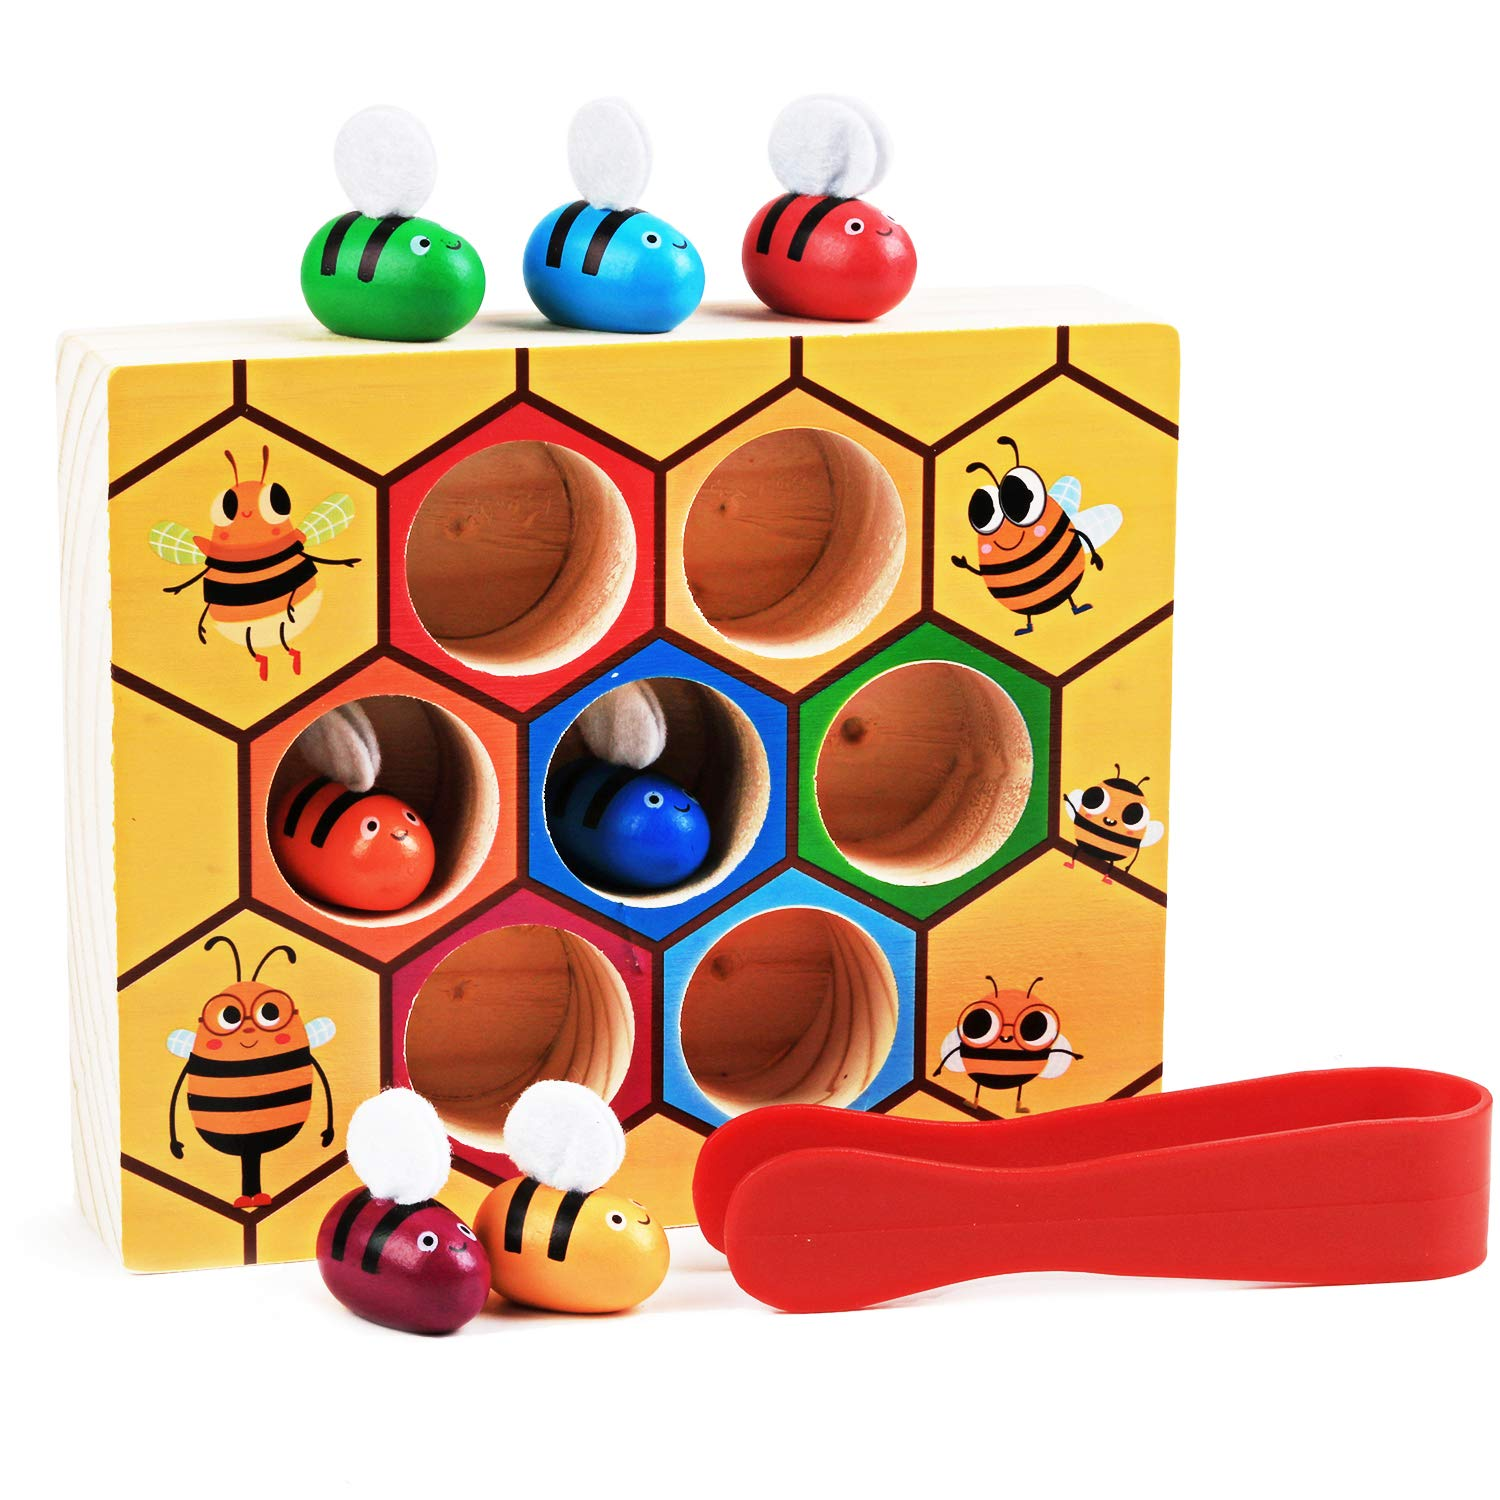 Fansport Toddler Baby Bee Hive Preschool Wooden Toys,Bee Toy,Motor Skills Toys for Toddlers for Baby Early Educational Toddler Montessori Game Motor Skills Toy